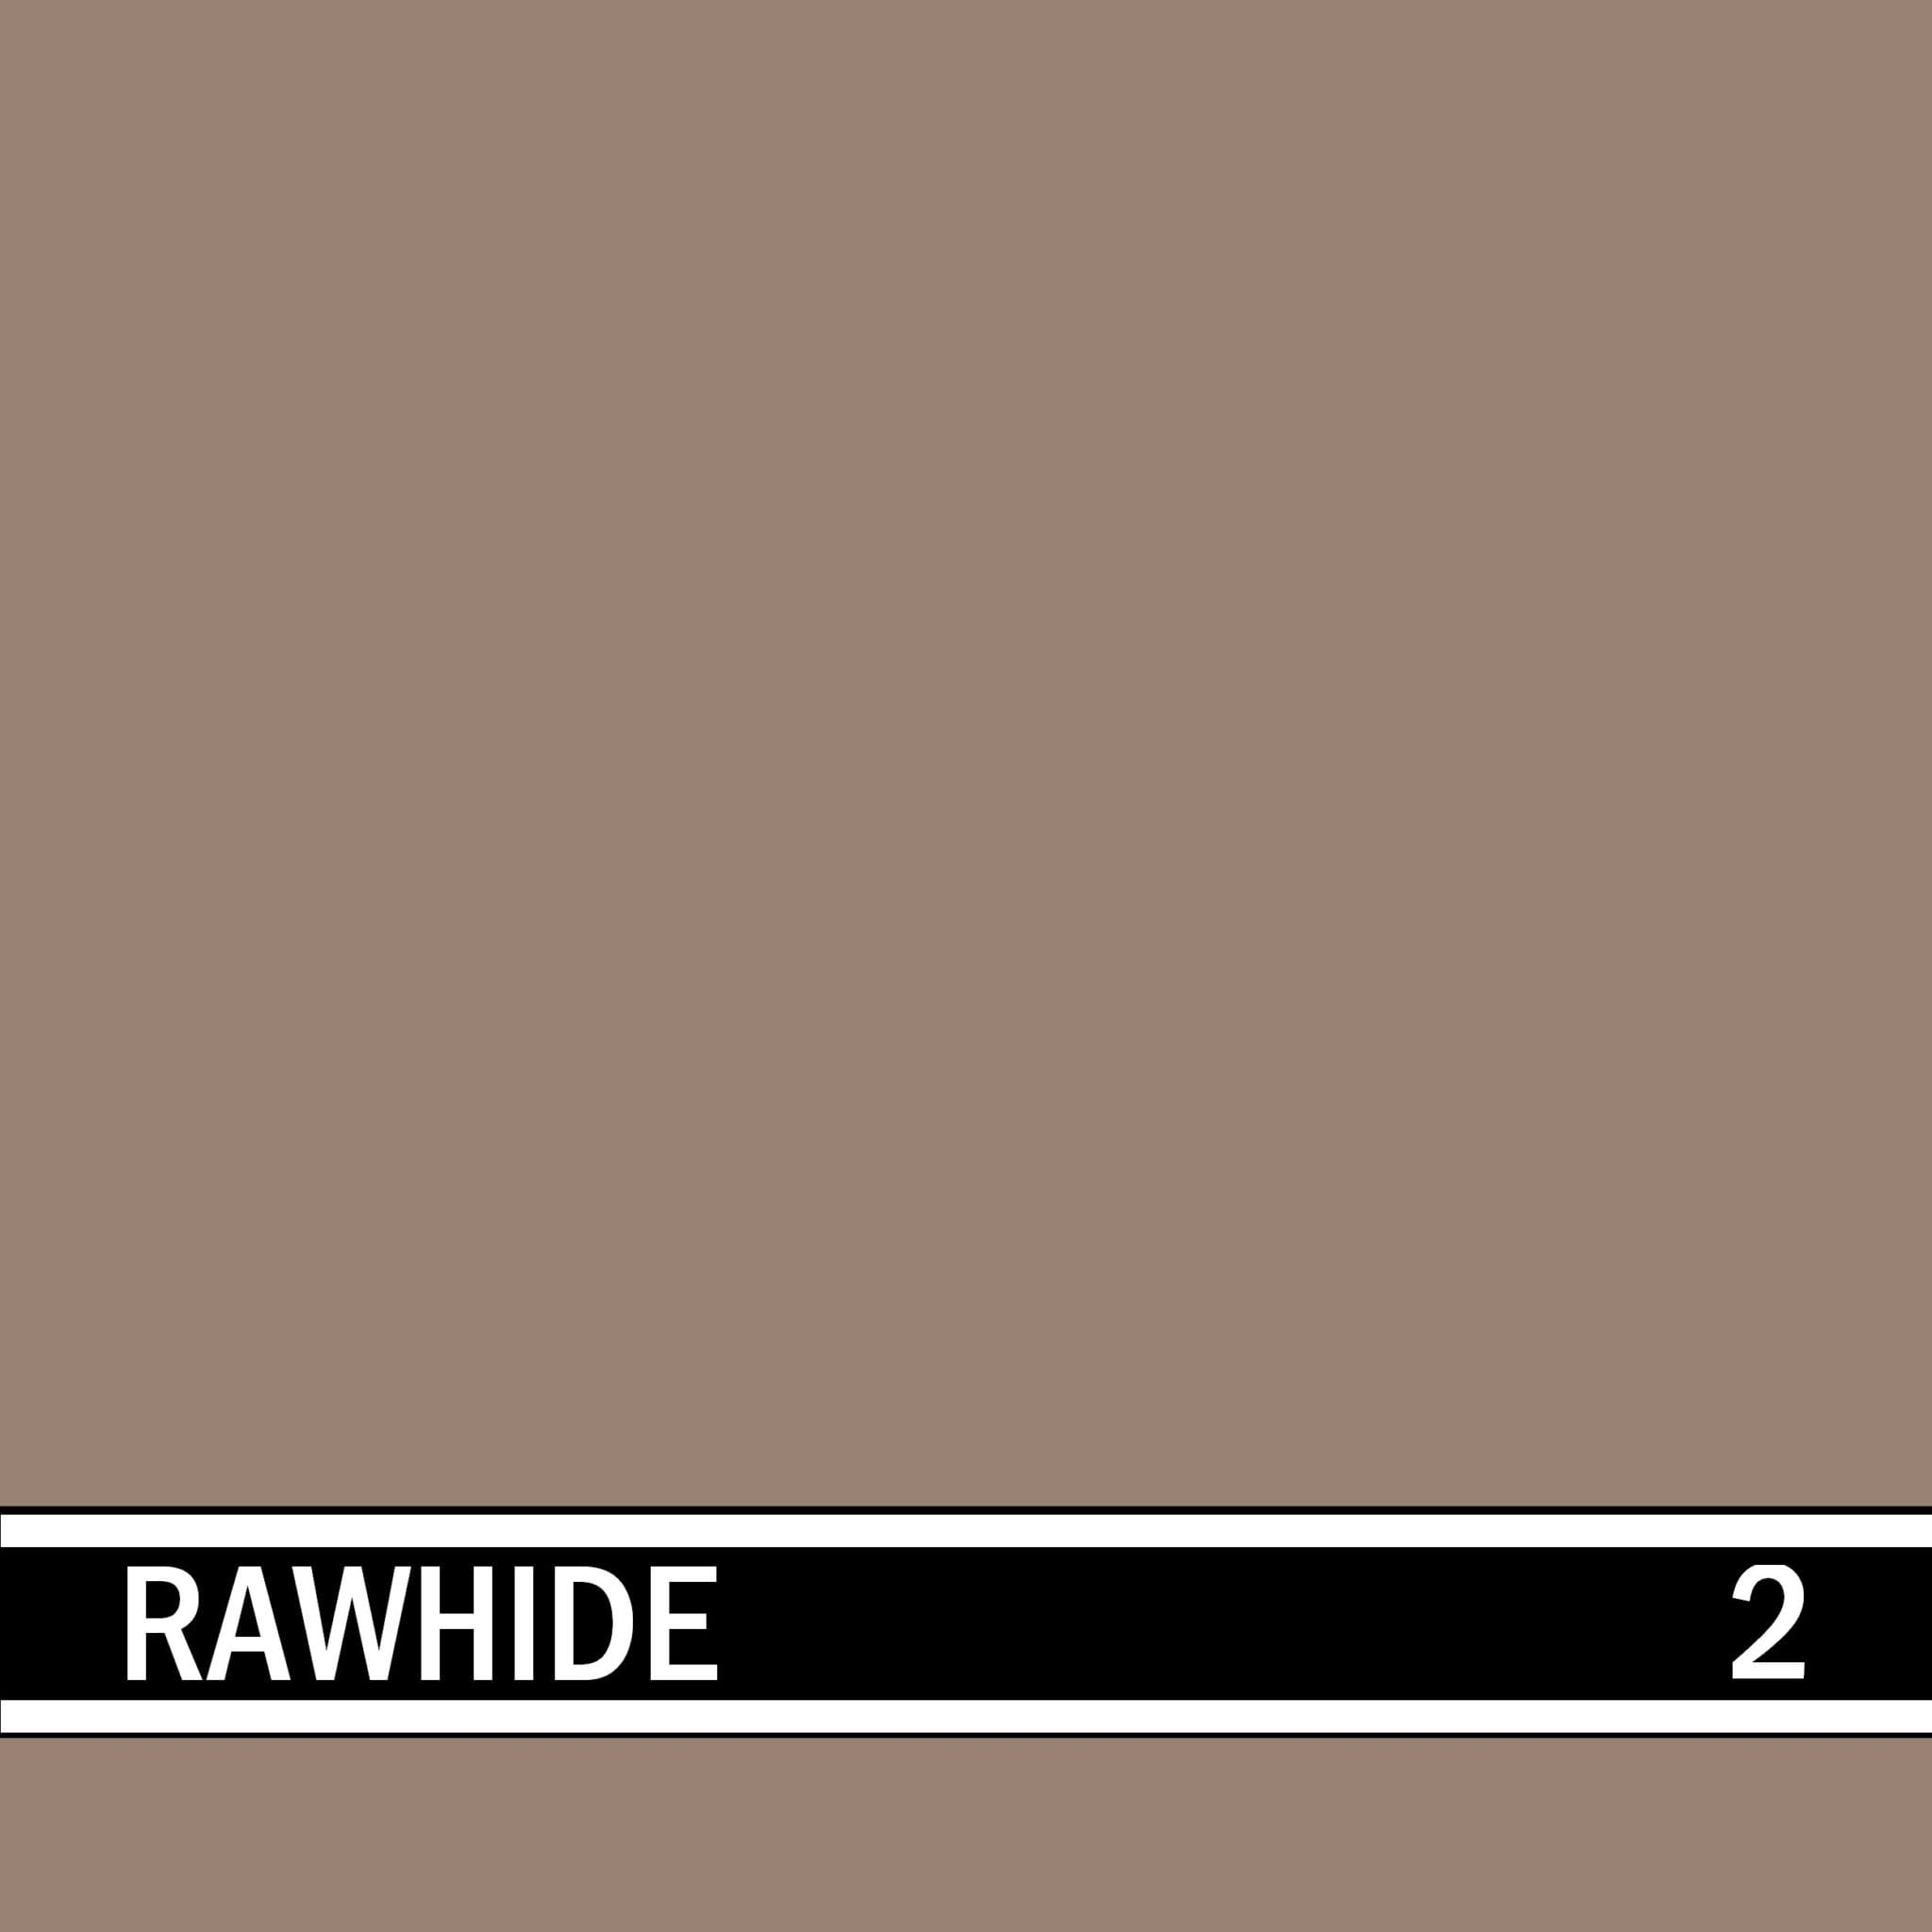 Rawhide integral concrete color for stamped concrete and decorative colored concrete